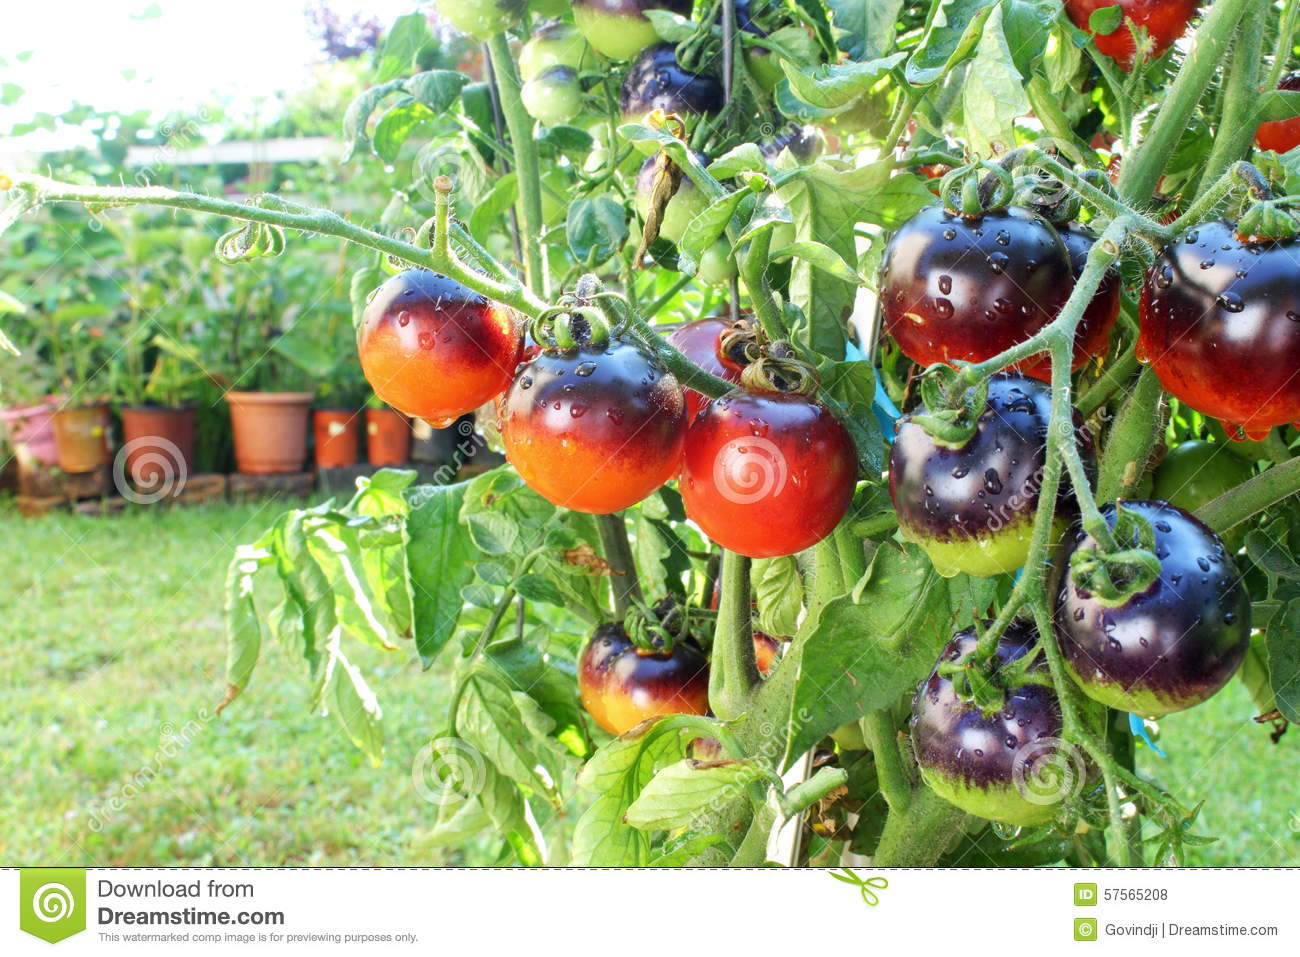 Indigo Rose Black Tomato On Tomato Plant Stock Photo ...